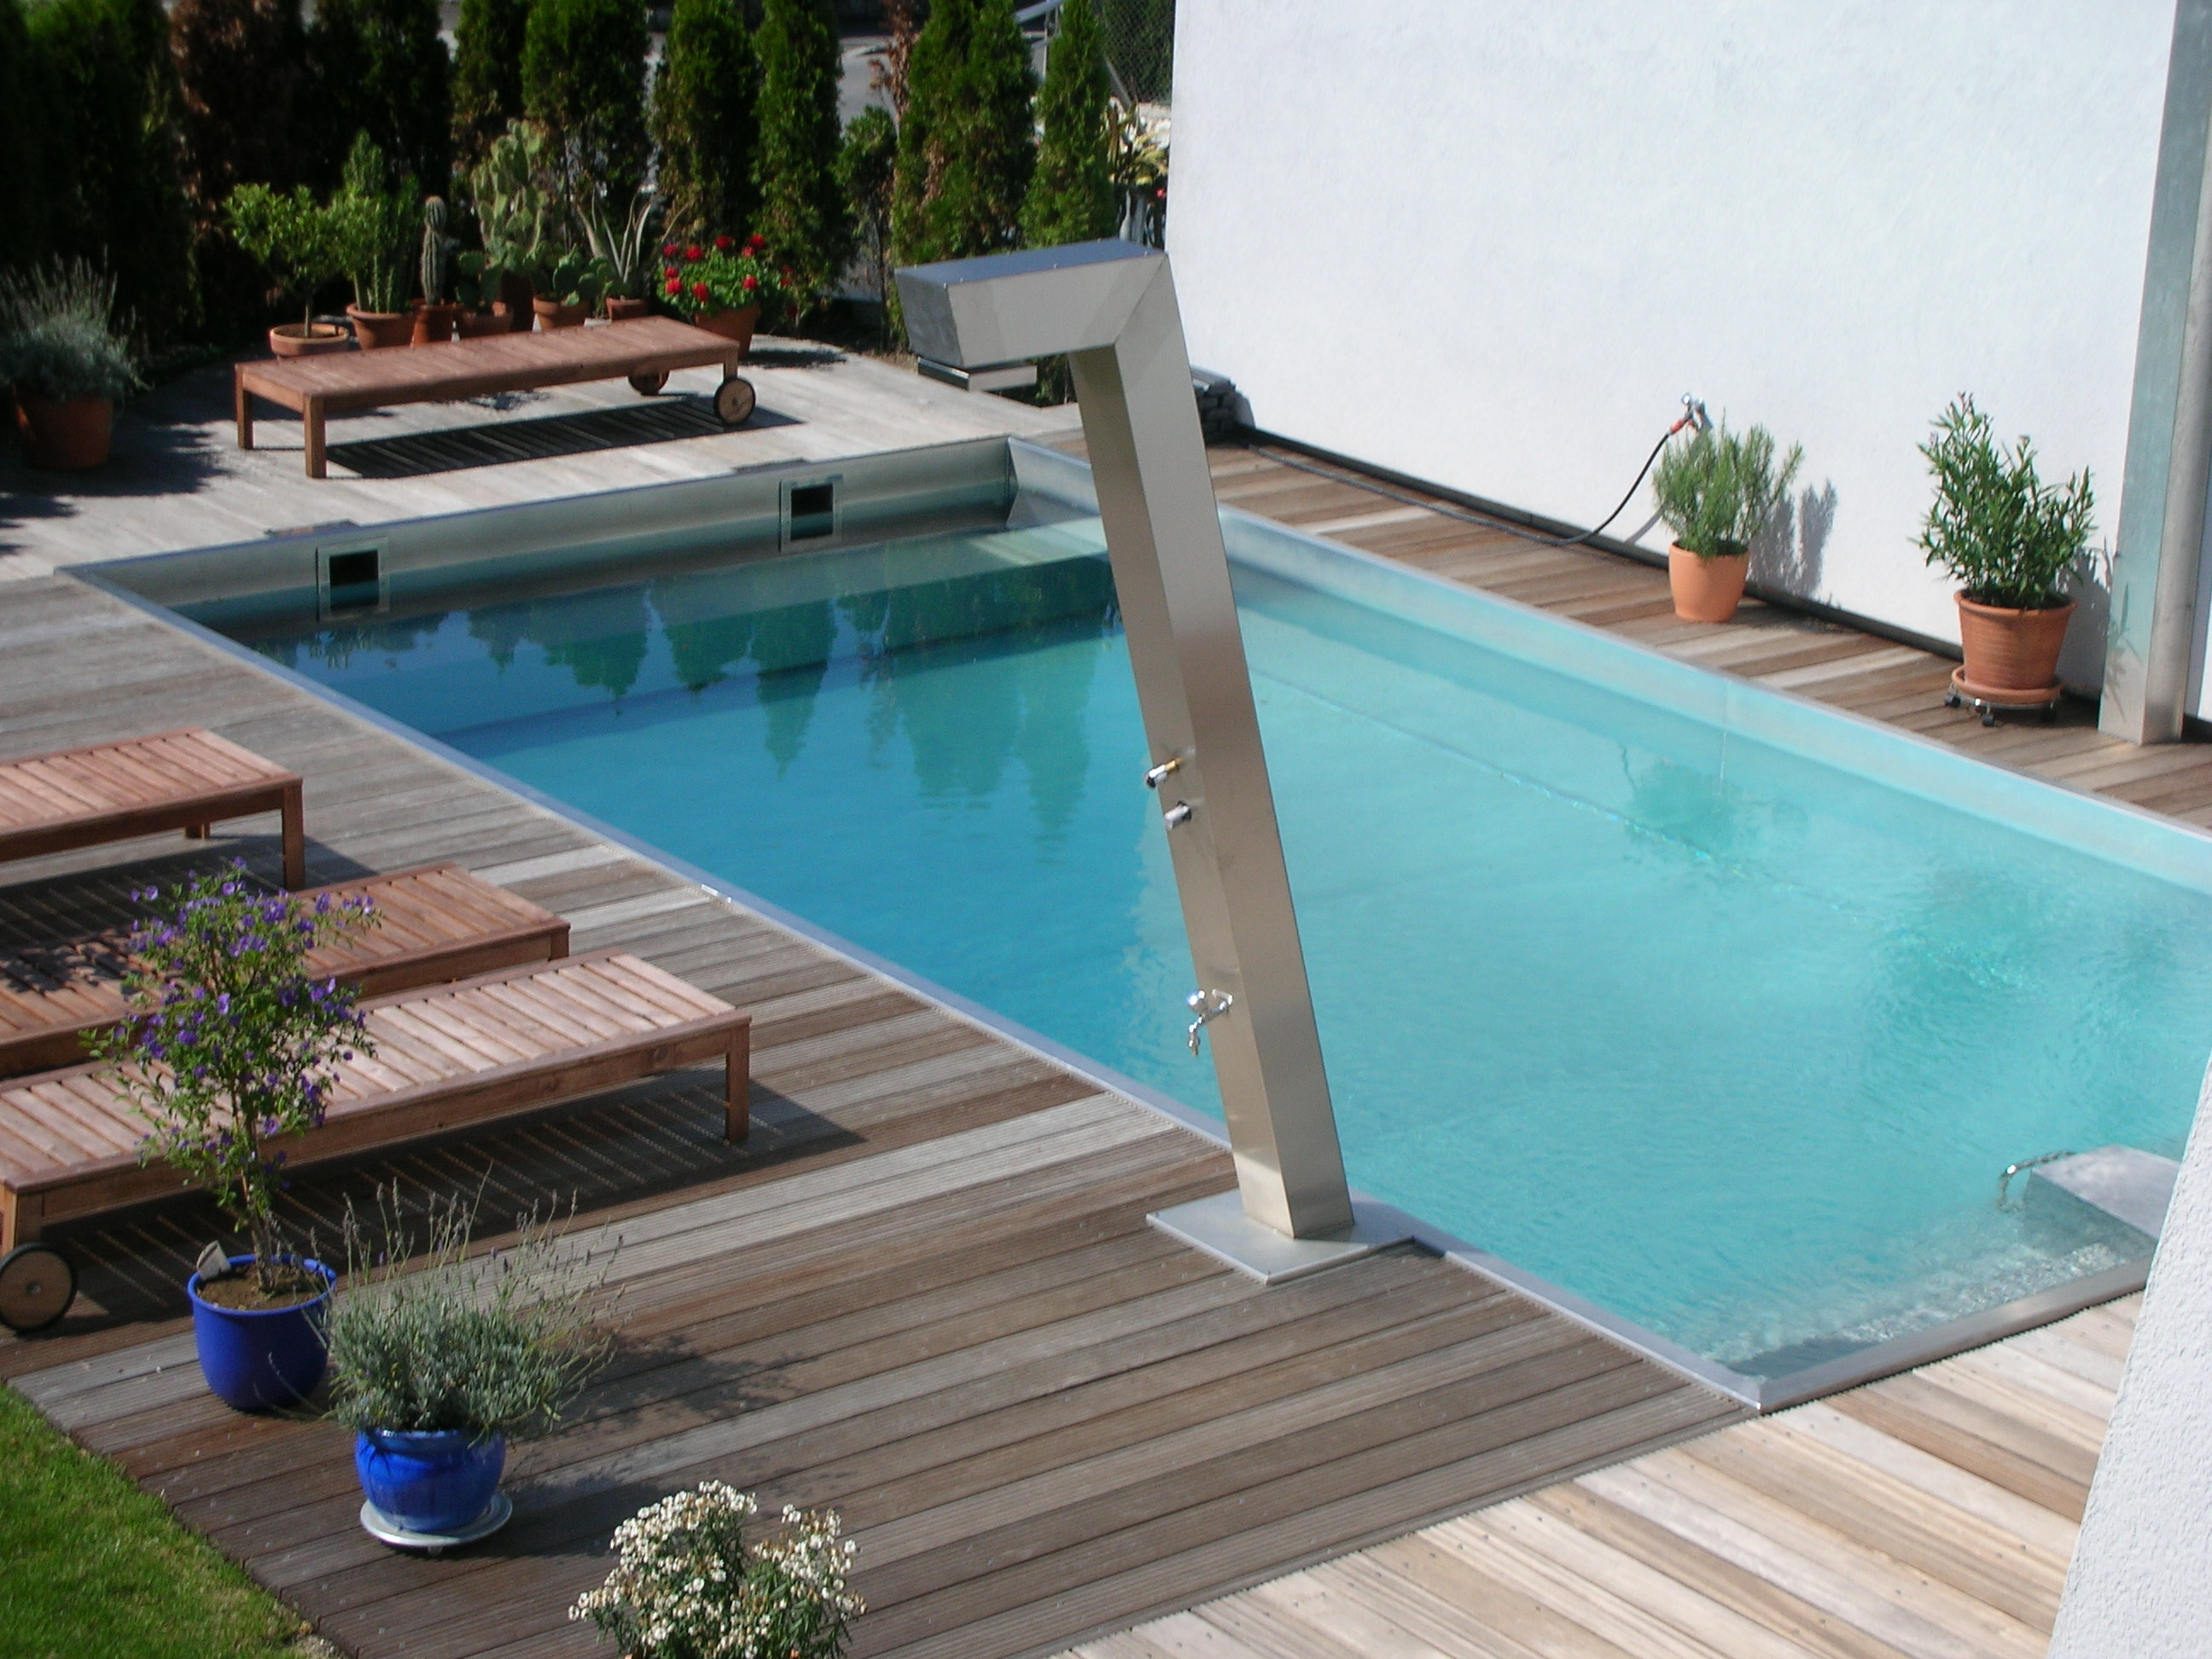 Pool Terrasse Skimmer Pools Niropool